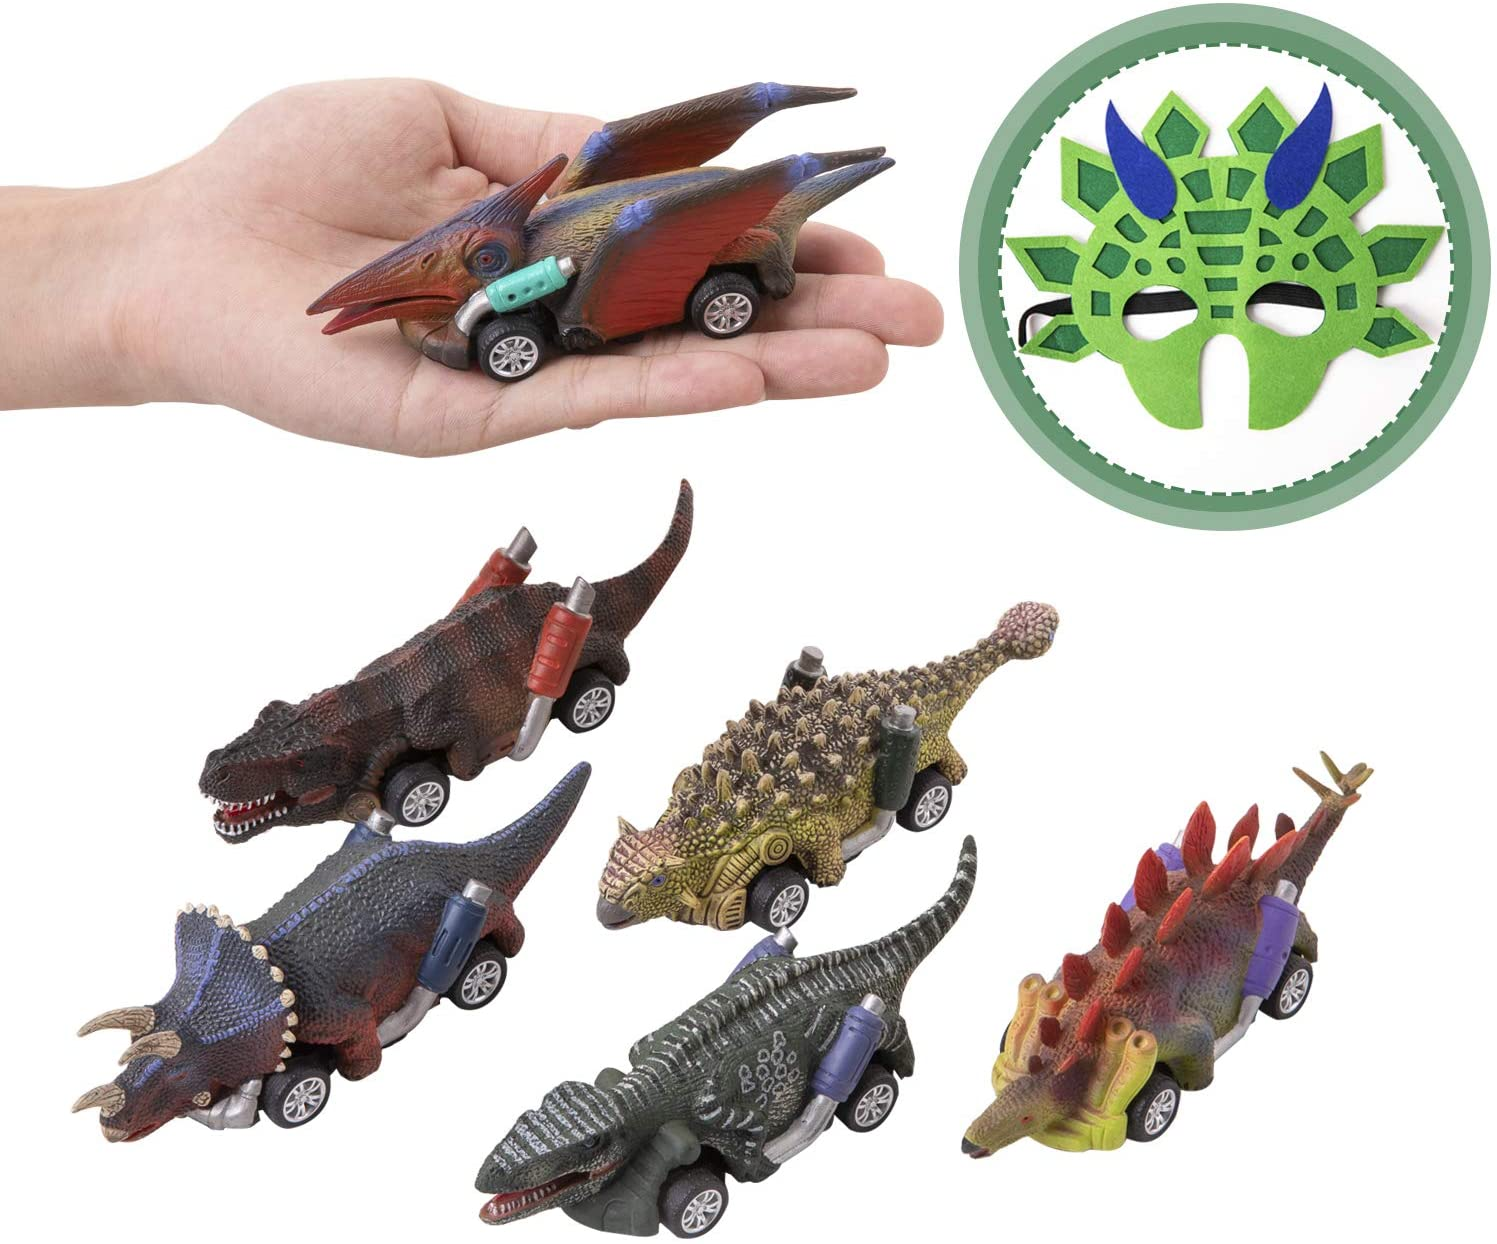 Dinosaur Cars- Pull Back Dinosaur Vehicle Set With Wheel New Vehicles Car Toy Mini Pull Back Dino Cars Toy for 3-14 Year Toddlers Boys Girls,Animal Vehicles for Kids Party Great Toys Gift Favors-7Pack